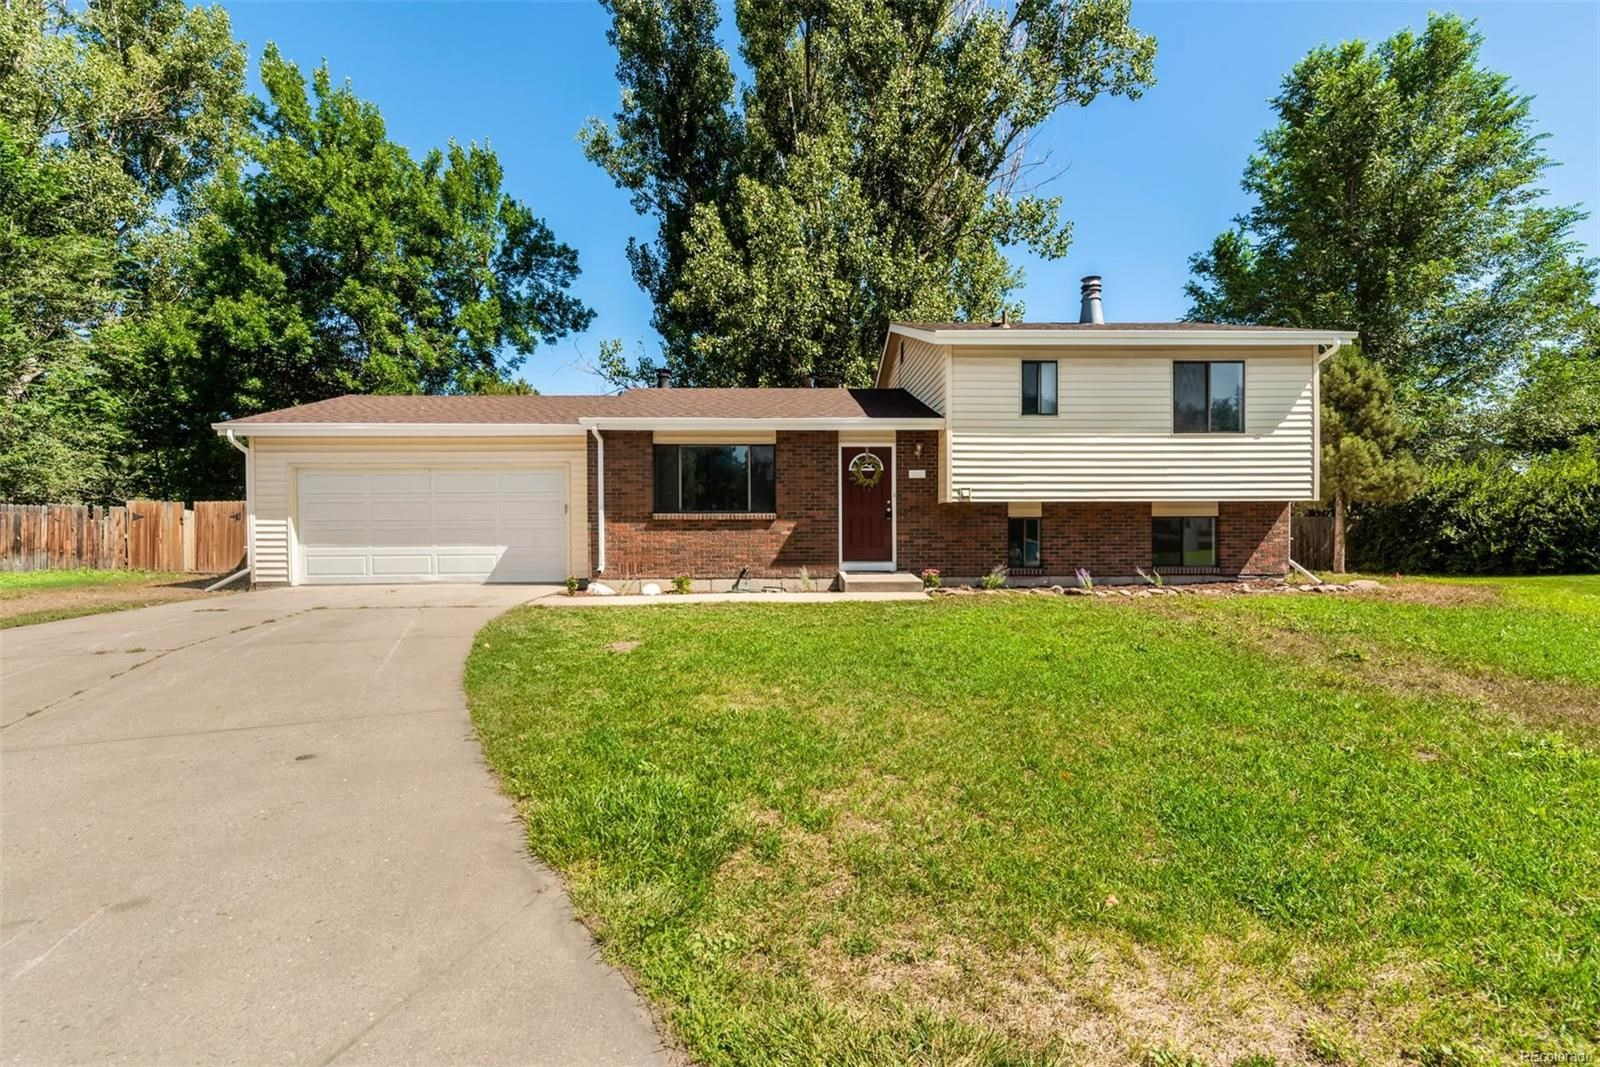 MLS# 5078905 - 1 - 3500 Kingston Circle, Fort Collins, CO 80525